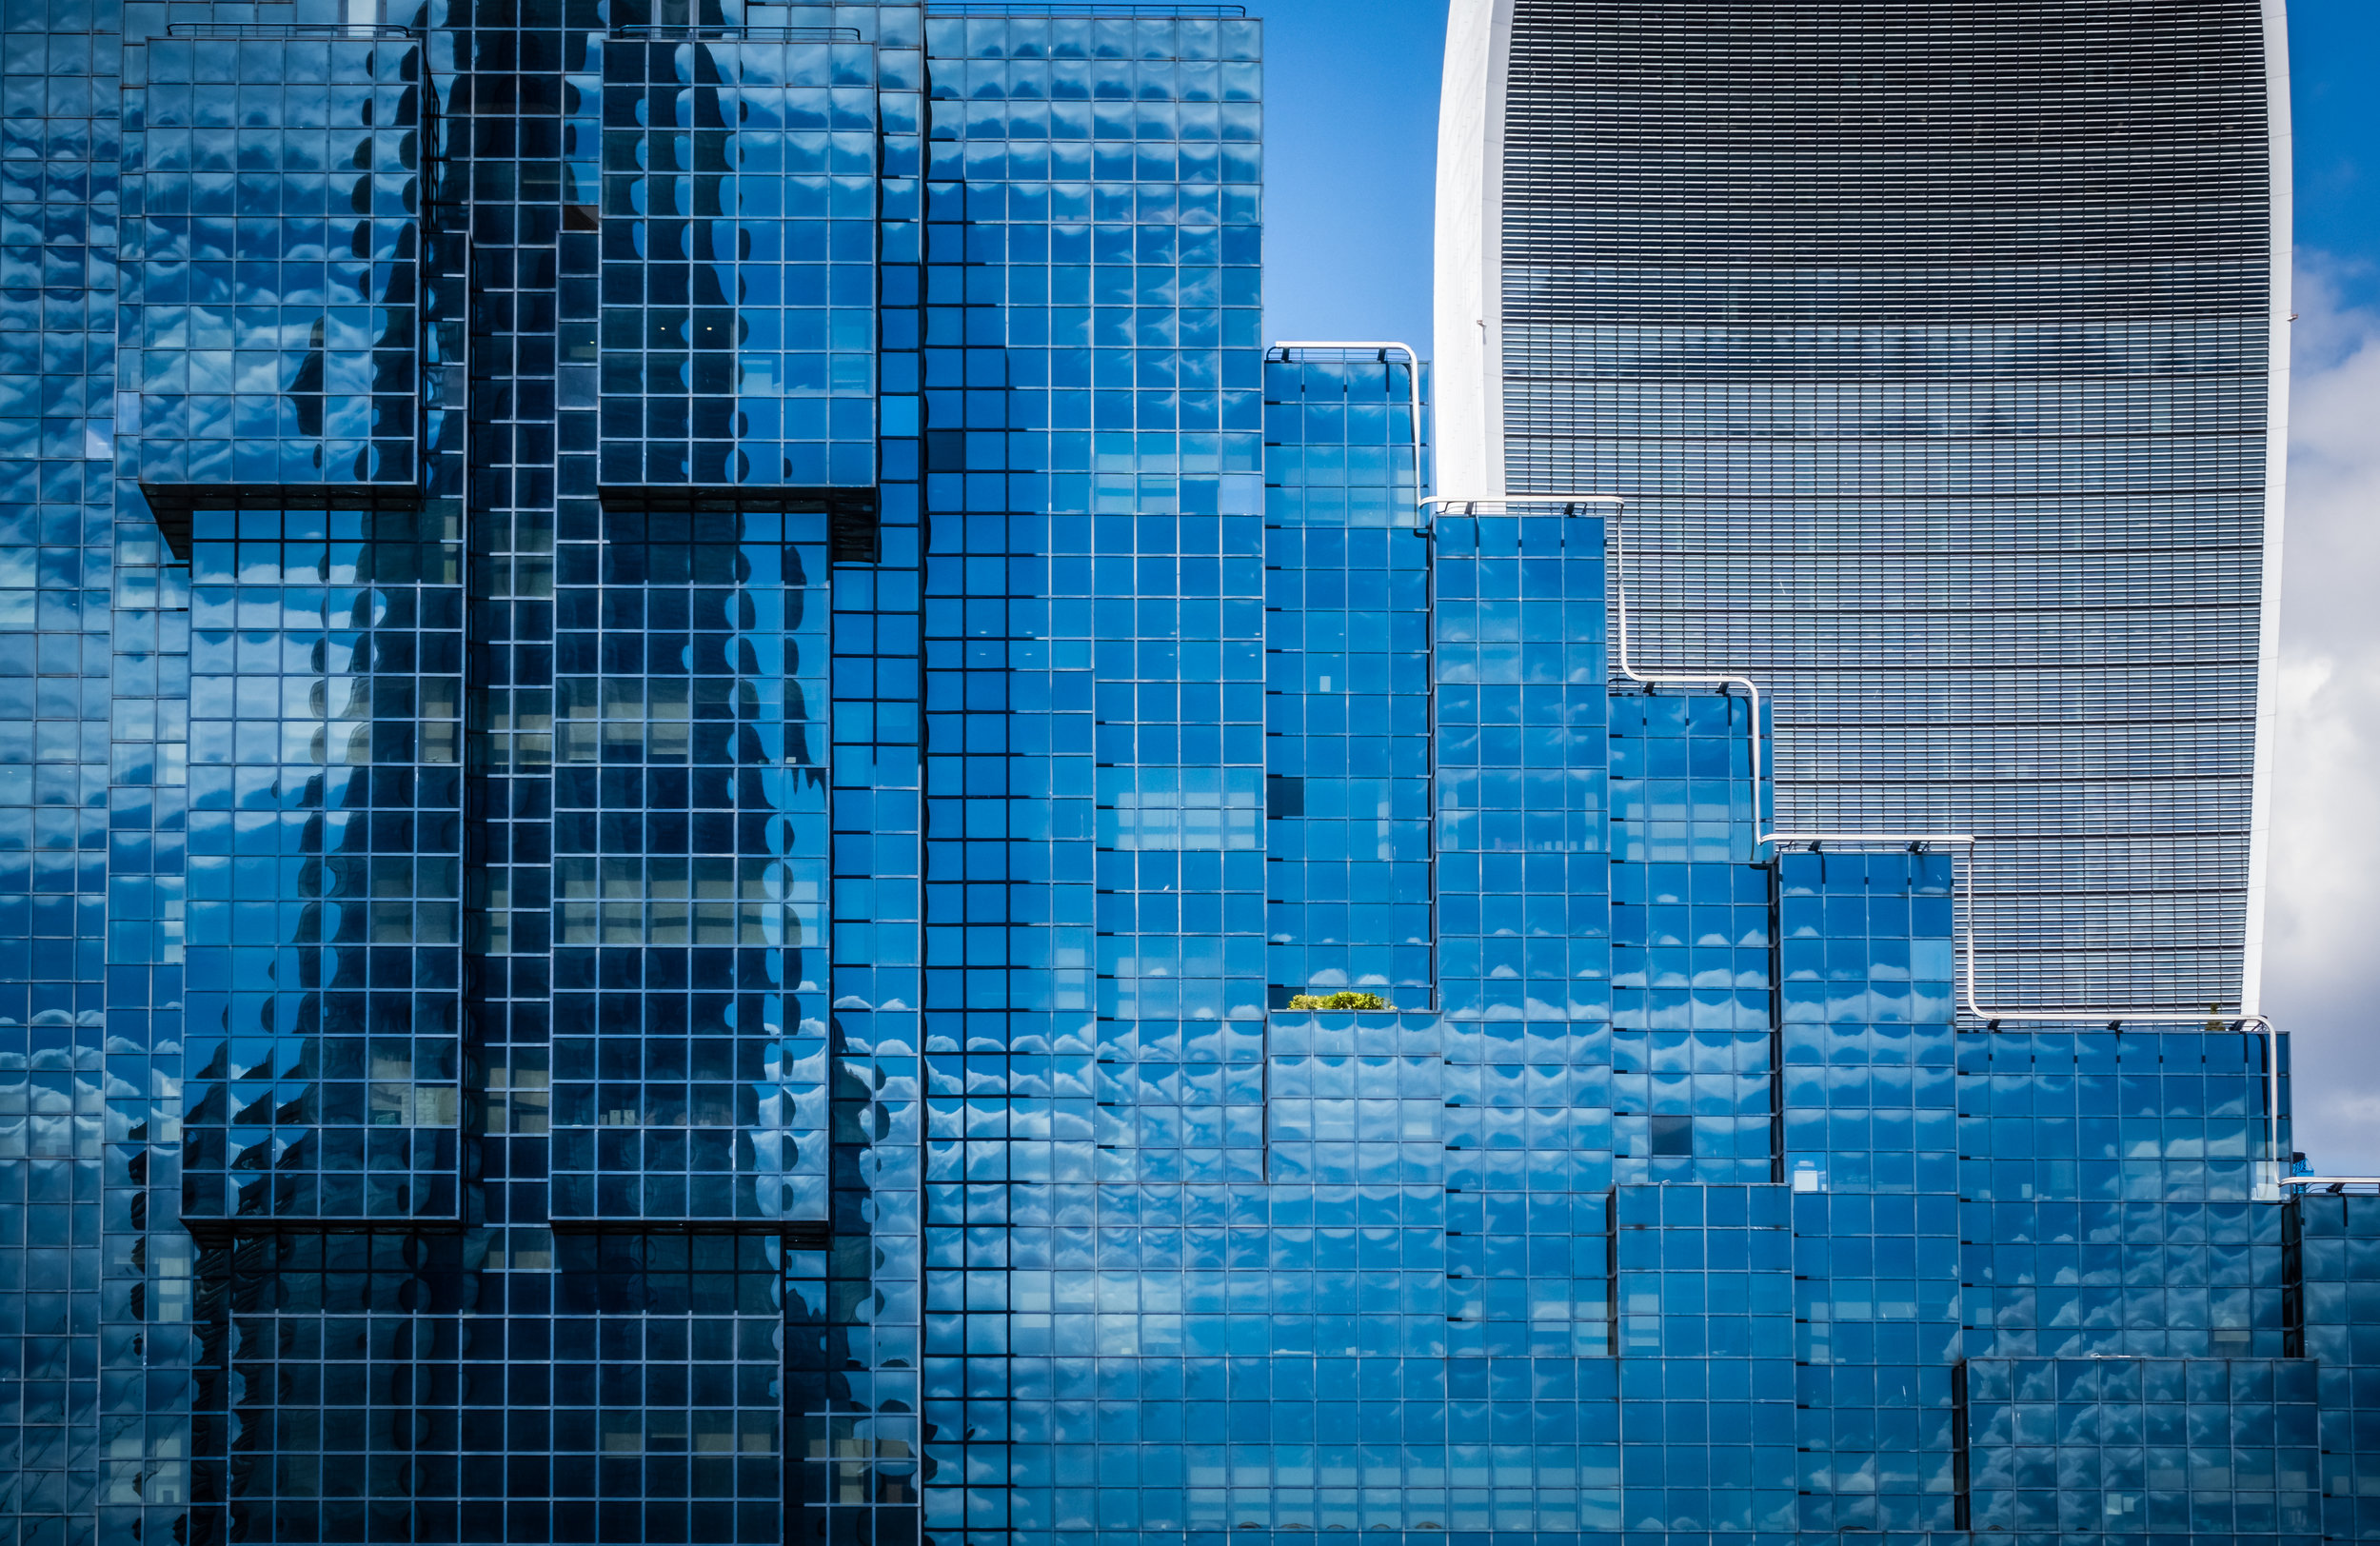 commercial-architecture-in-london-P5KN83N.jpg